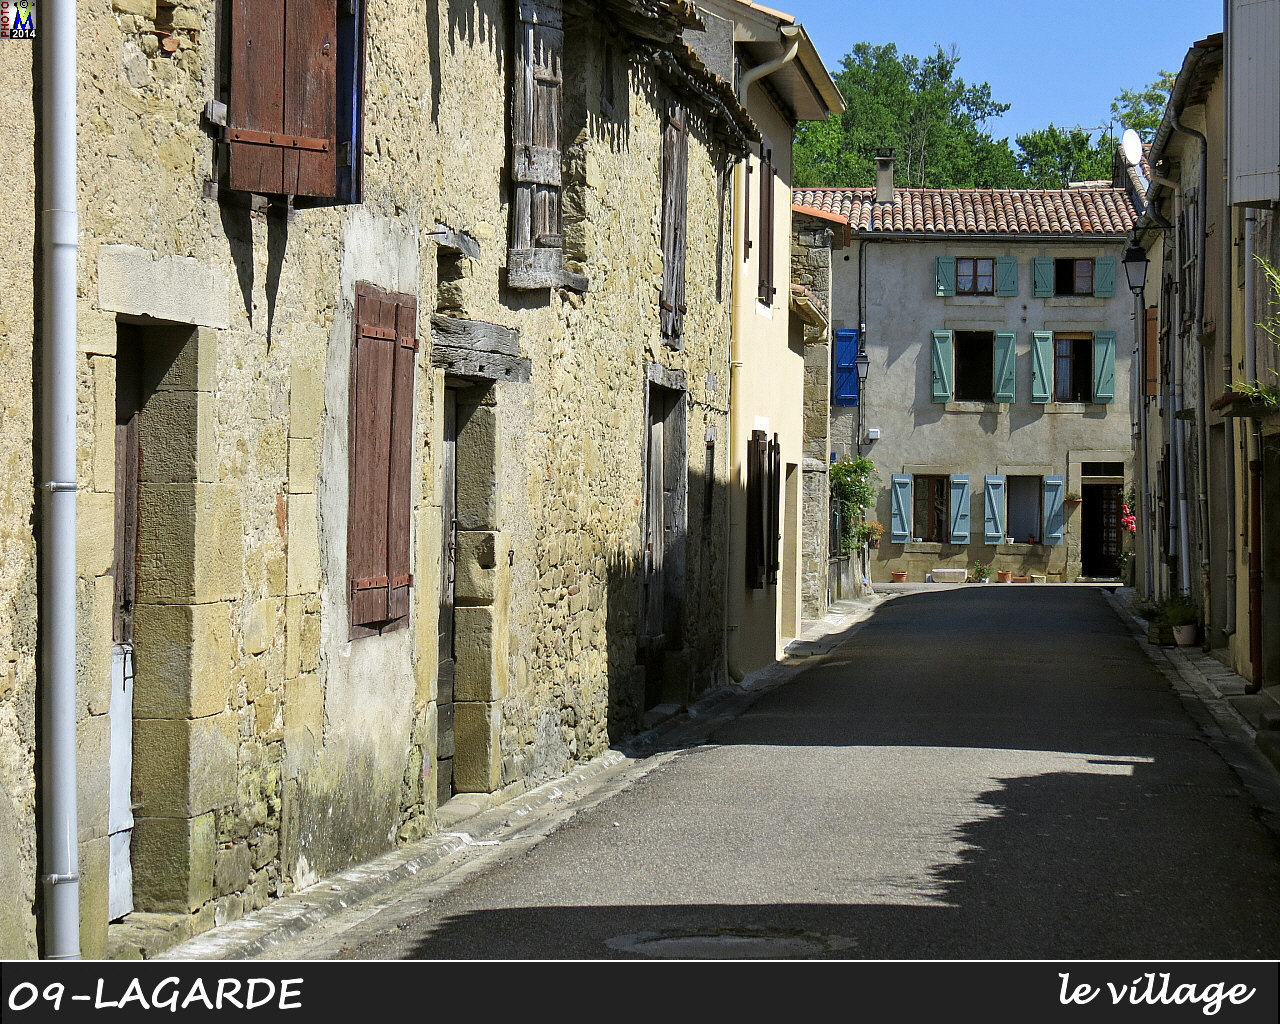 09LAGARDE_village_116.jpg